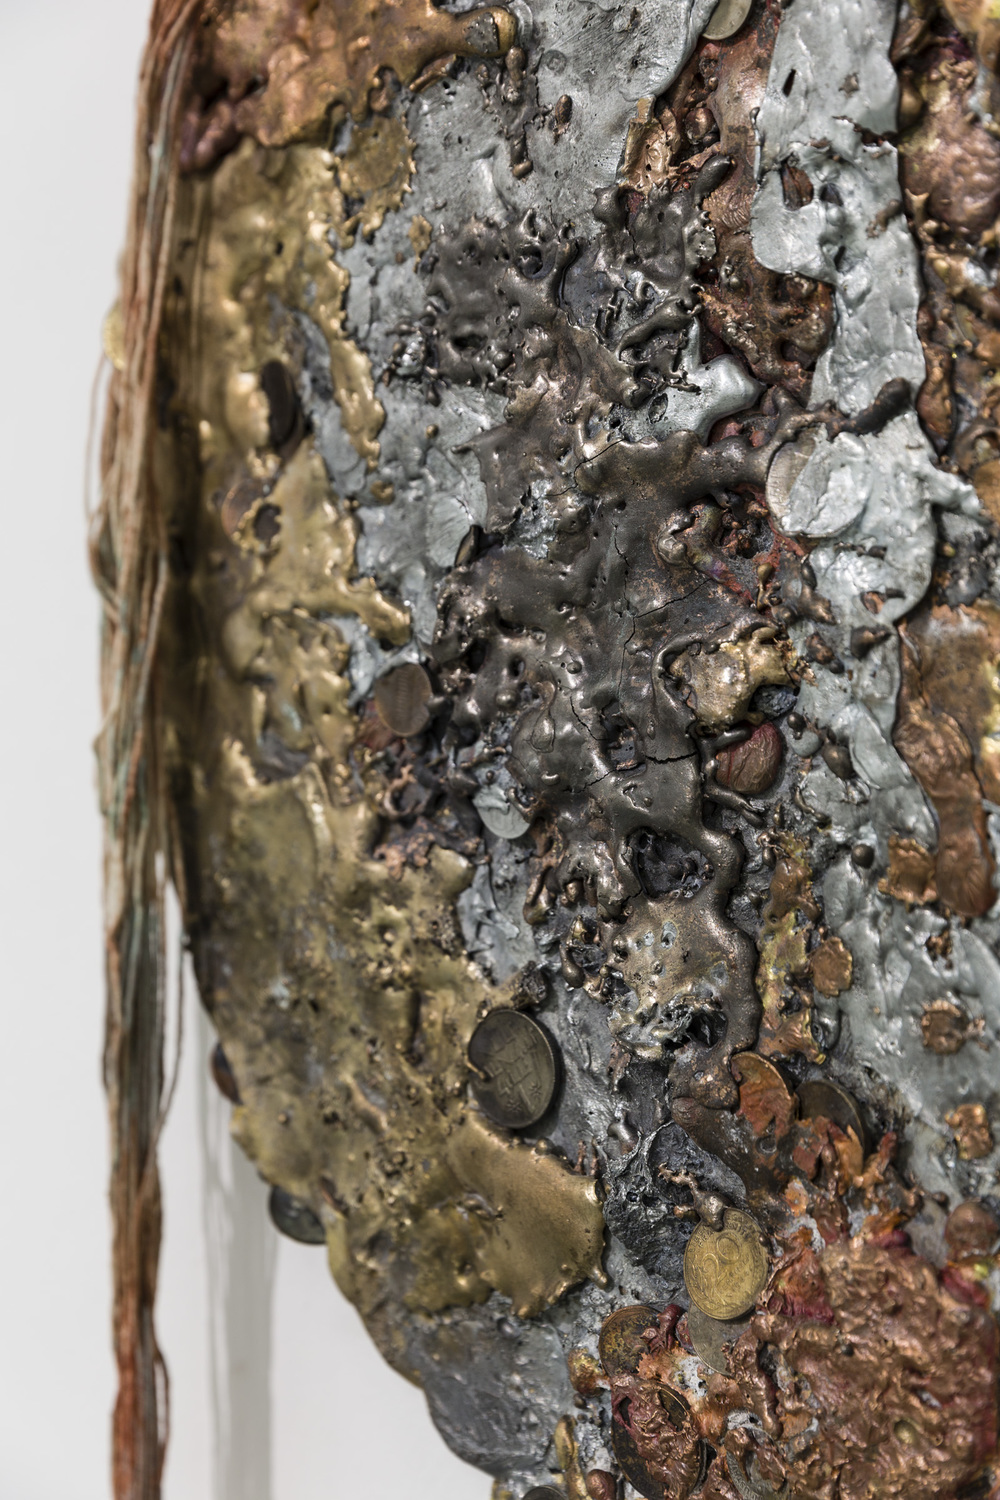 Jory Rabinovitz,  Given (Halved)  (detail), 2015, melted currency, unsold sculptures, Verdigris, iron oxide, zinc white, 48 x 48 x 72 in